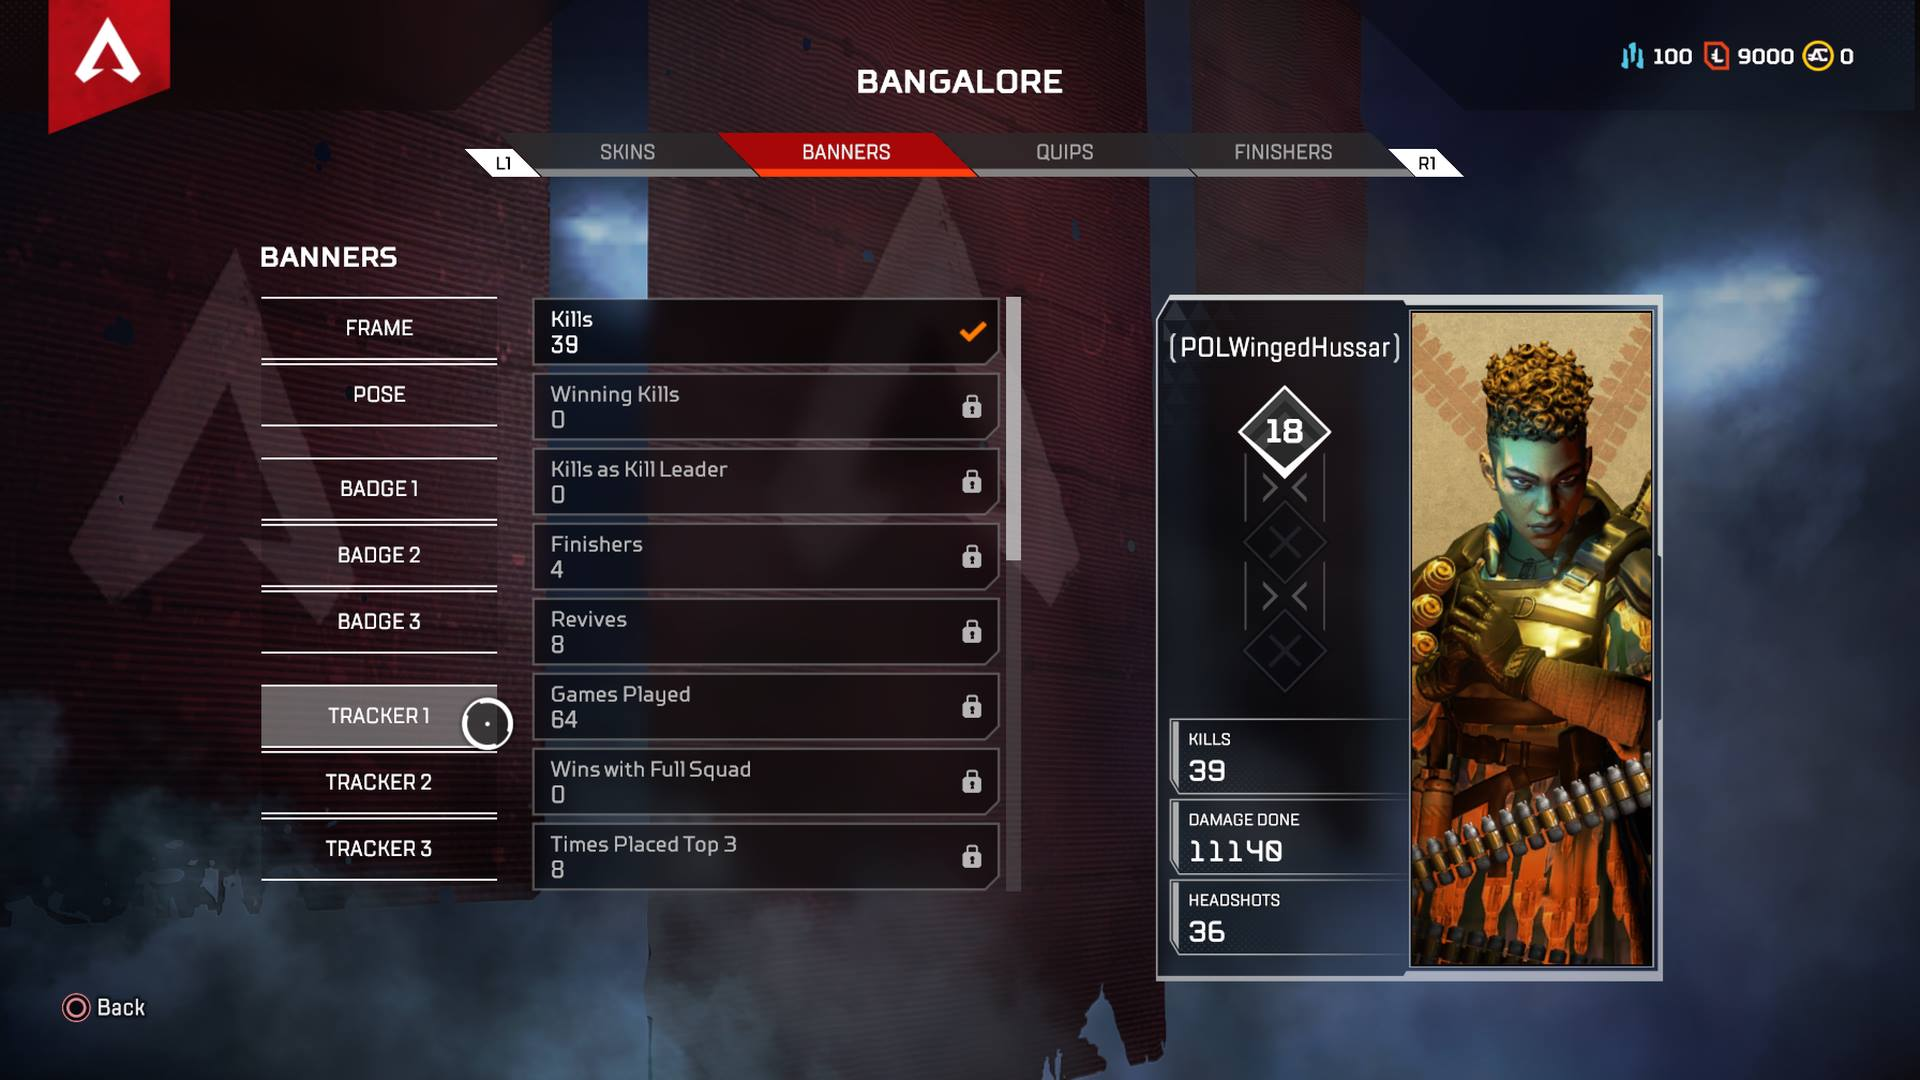 Select your favorite Legend, then interact with the Tracker option to view your stats for that character in Apex Legends.